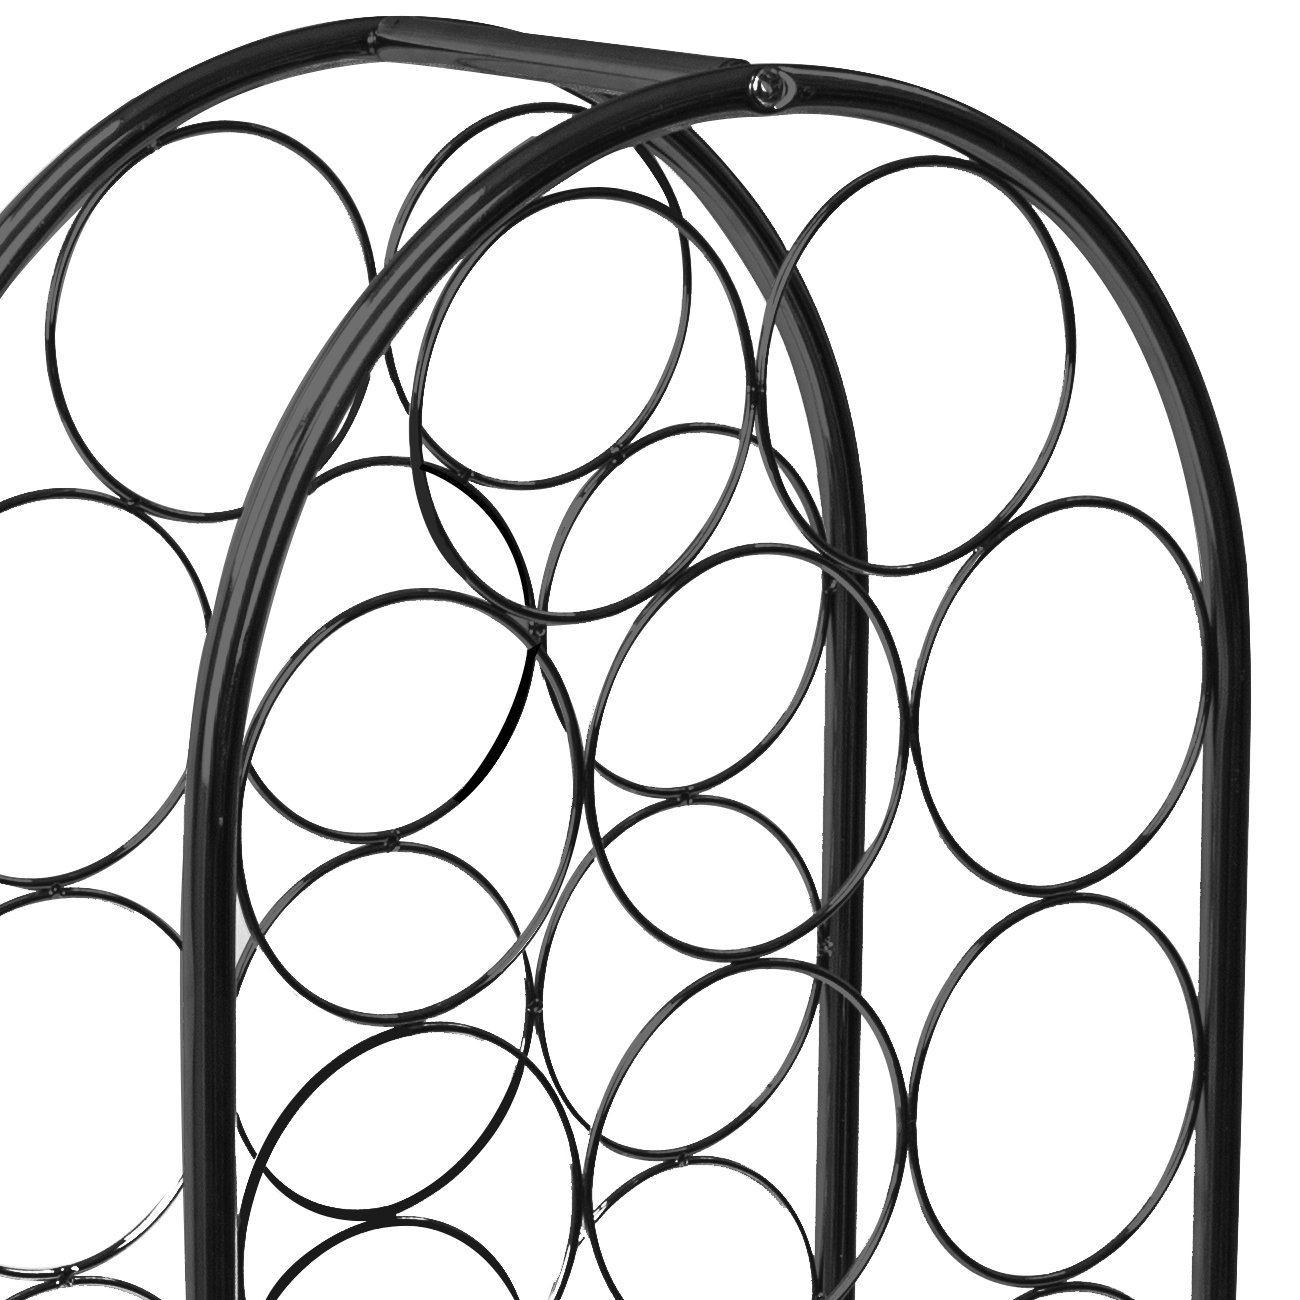 Sorbus Wine Rack Stand Bordeaux Chateau Style - Holds 14 Bottles of Your Favorite Wine - Elegant Storage for Kitchen, Dining Room, Bar, or Wine Cellar (14 Bottle - Black) by Sorbus (Image #7)